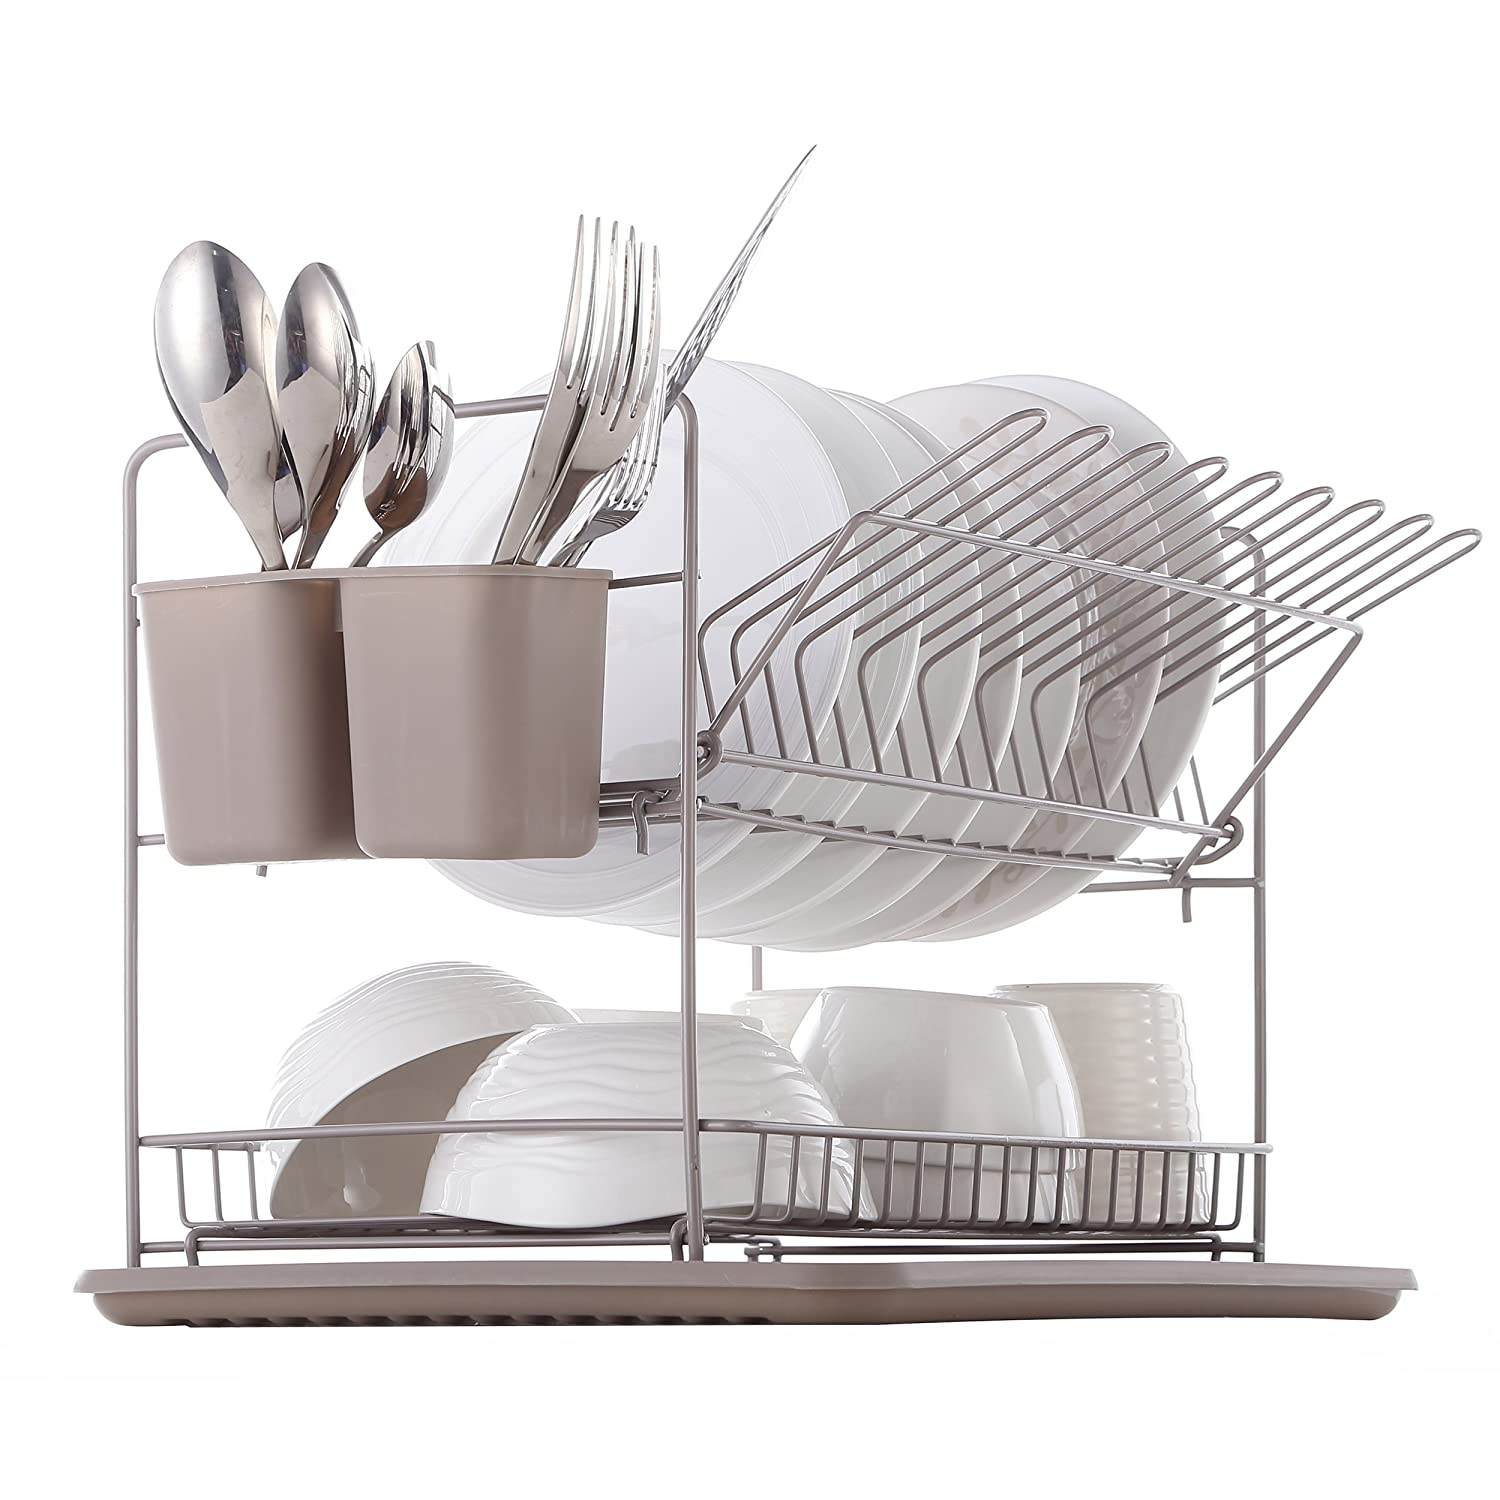 Harima - 2 Tier Folding Dish Rack Drainer with Drip Tray and Cutlery Baskets - Warm Grey